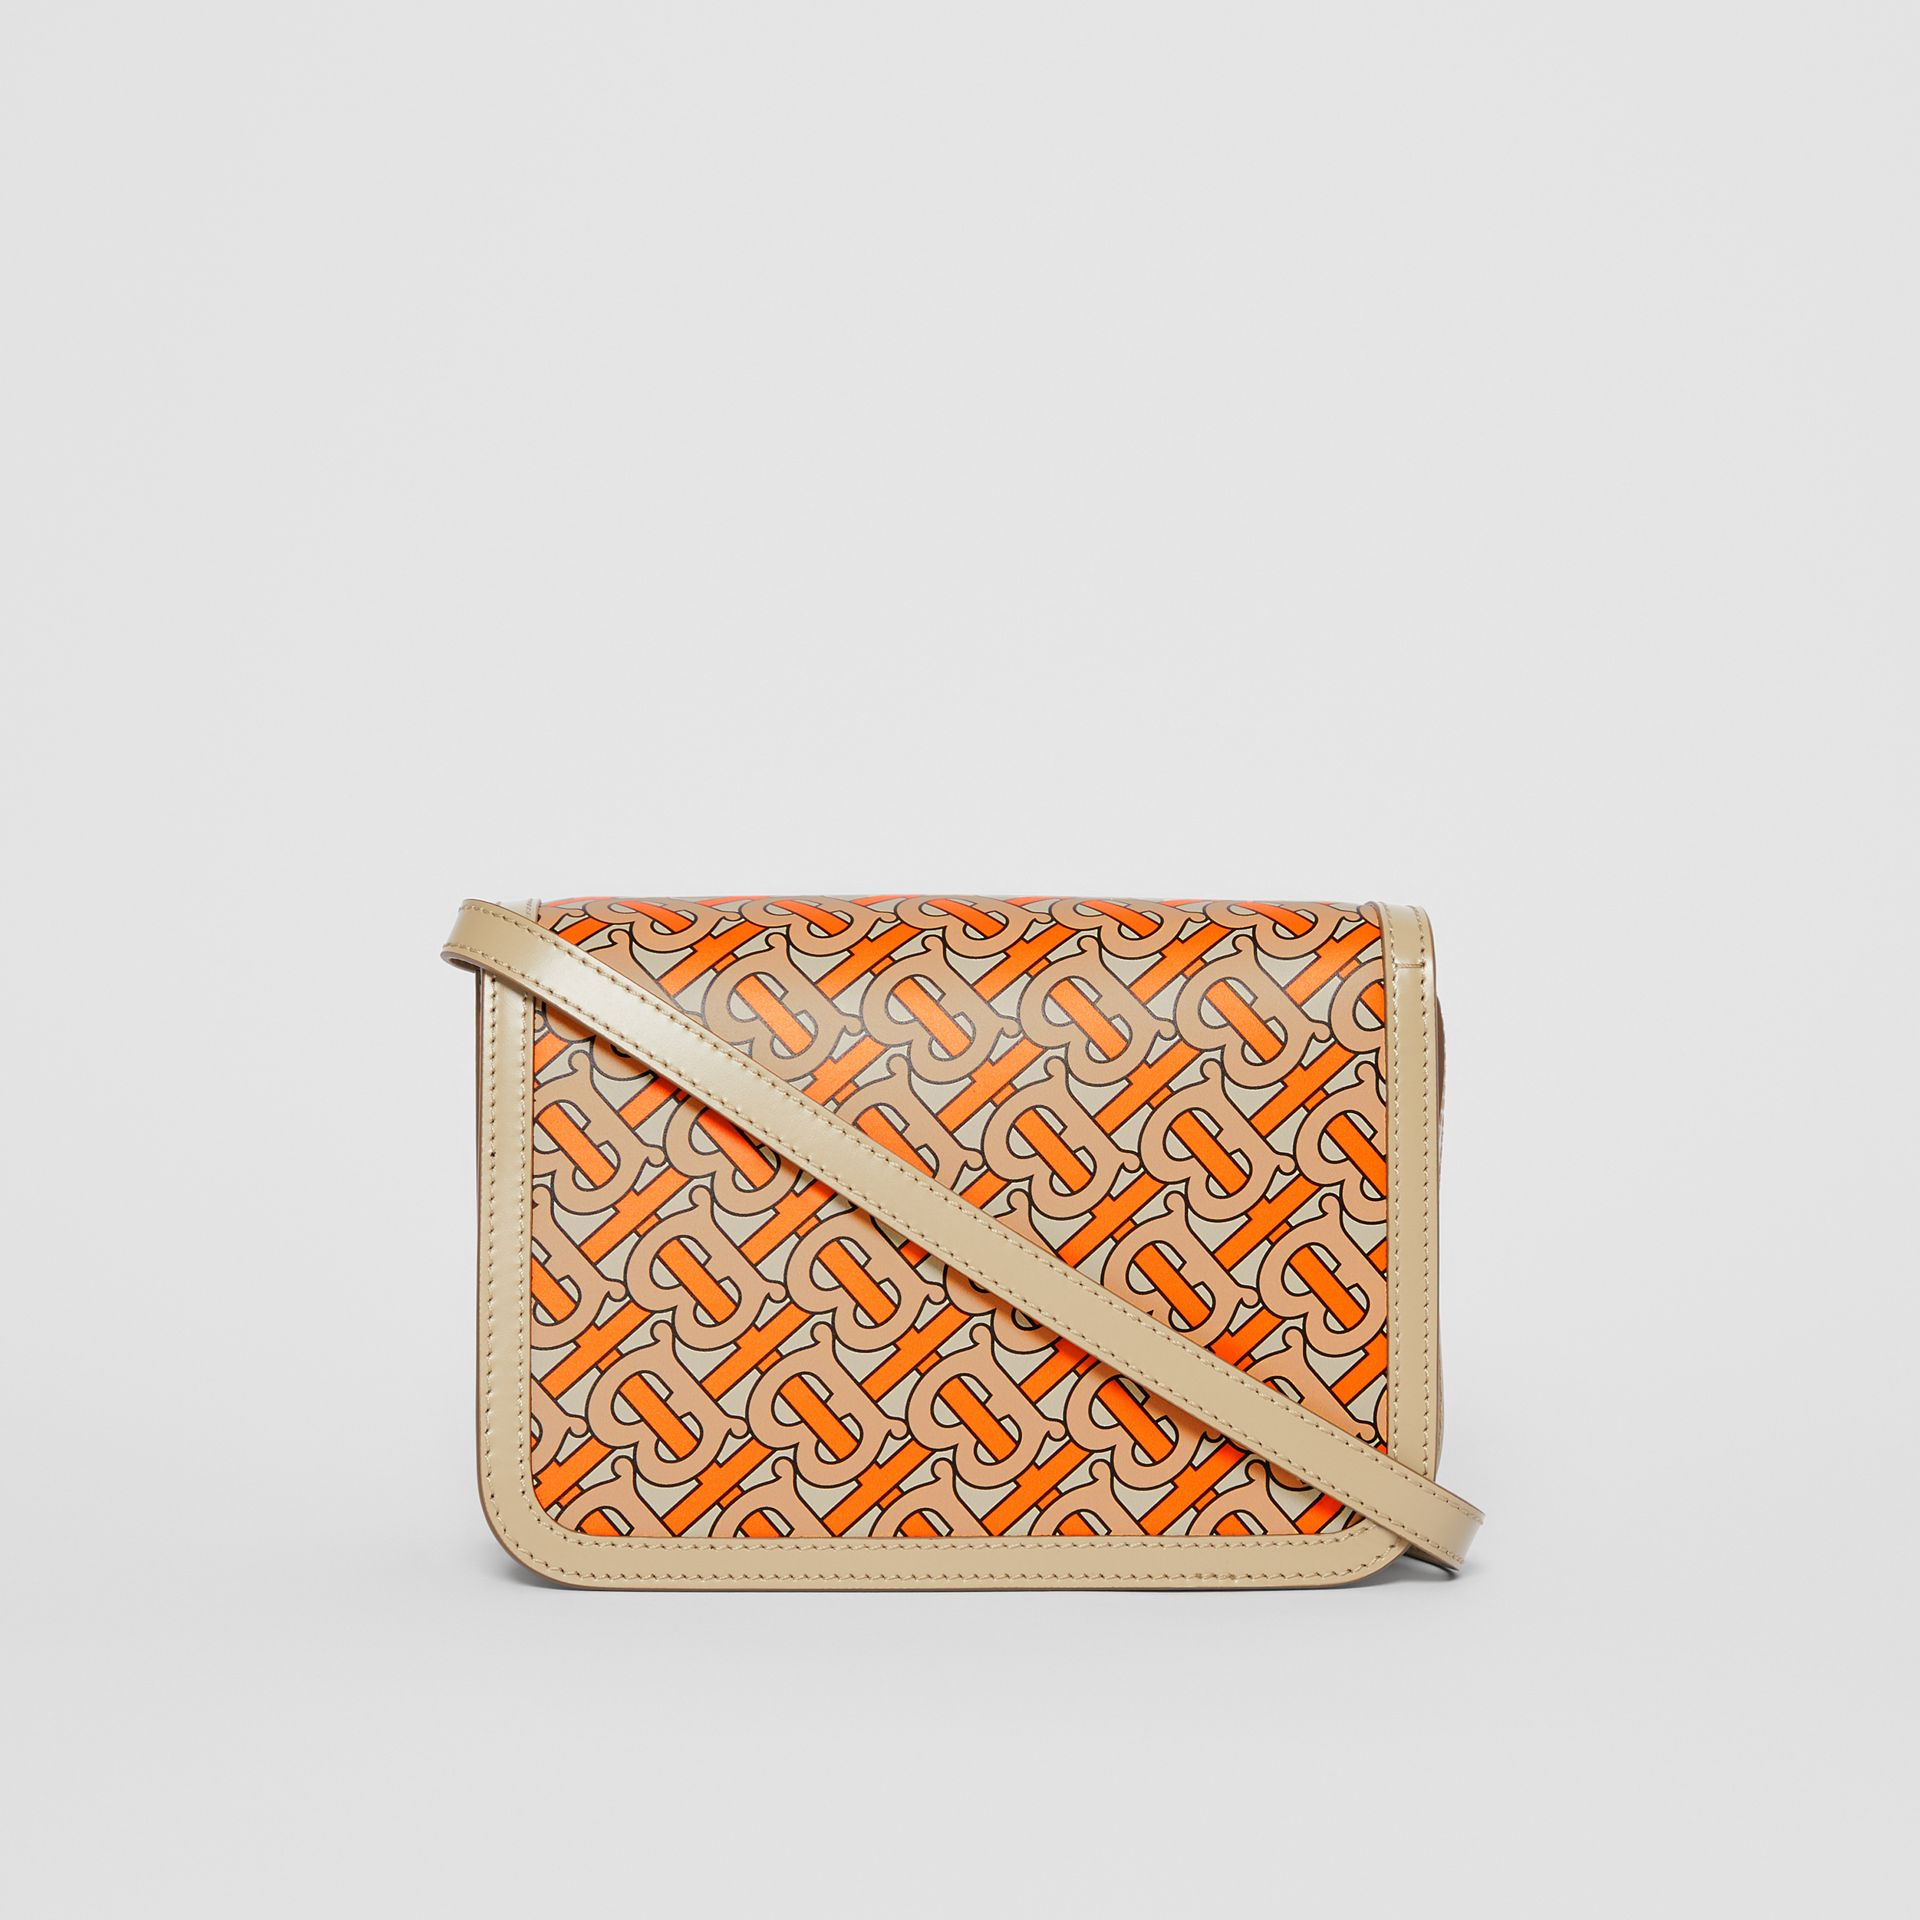 Small Monogram Print Leather TB Bag in Bright Orange - Women | Burberry - gallery image 5